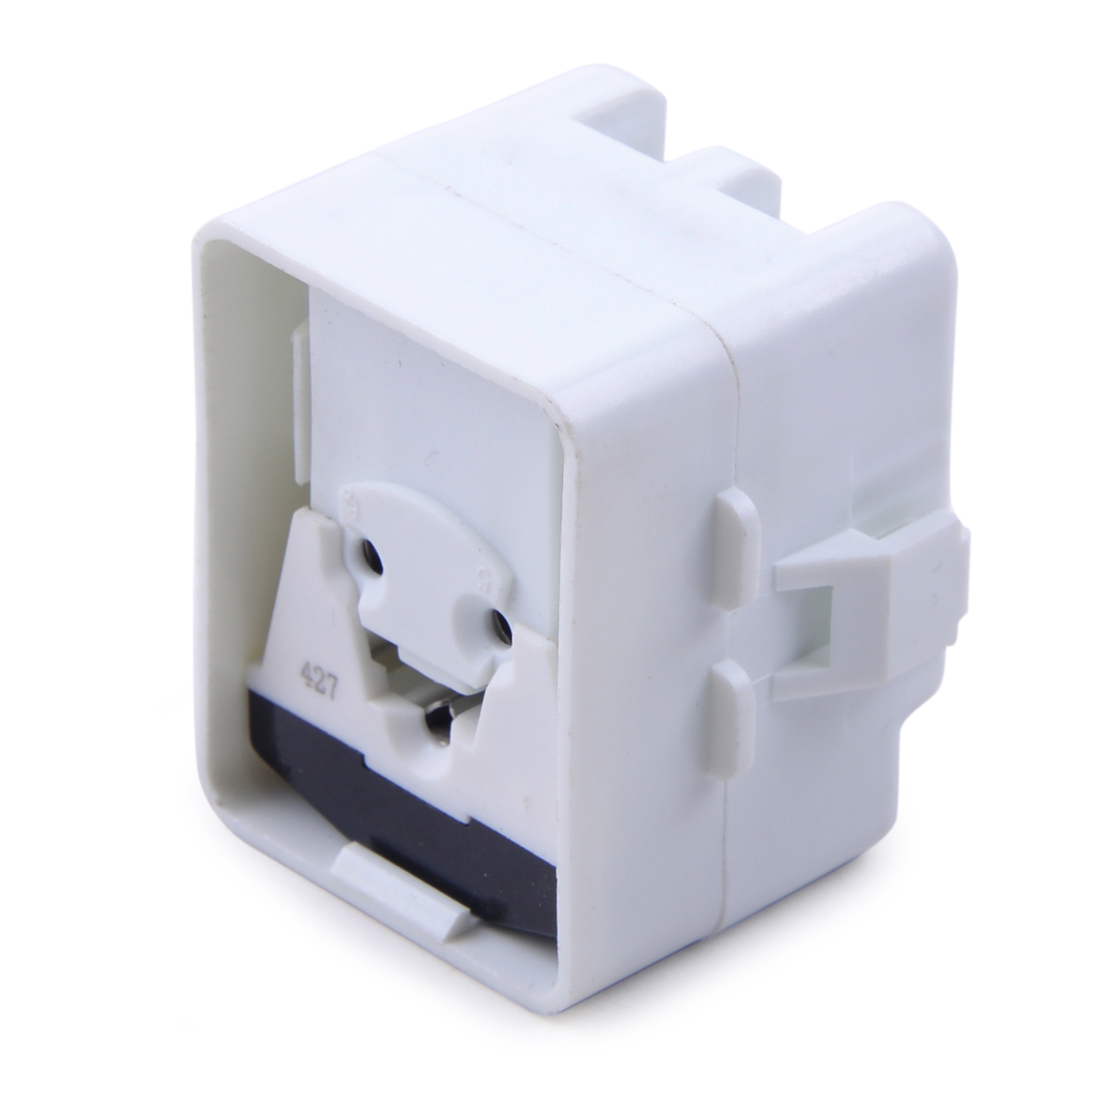 1Pc Refrigerator Overload Relay 61005518 12002782 AP4009659 For Maytag Kenmore